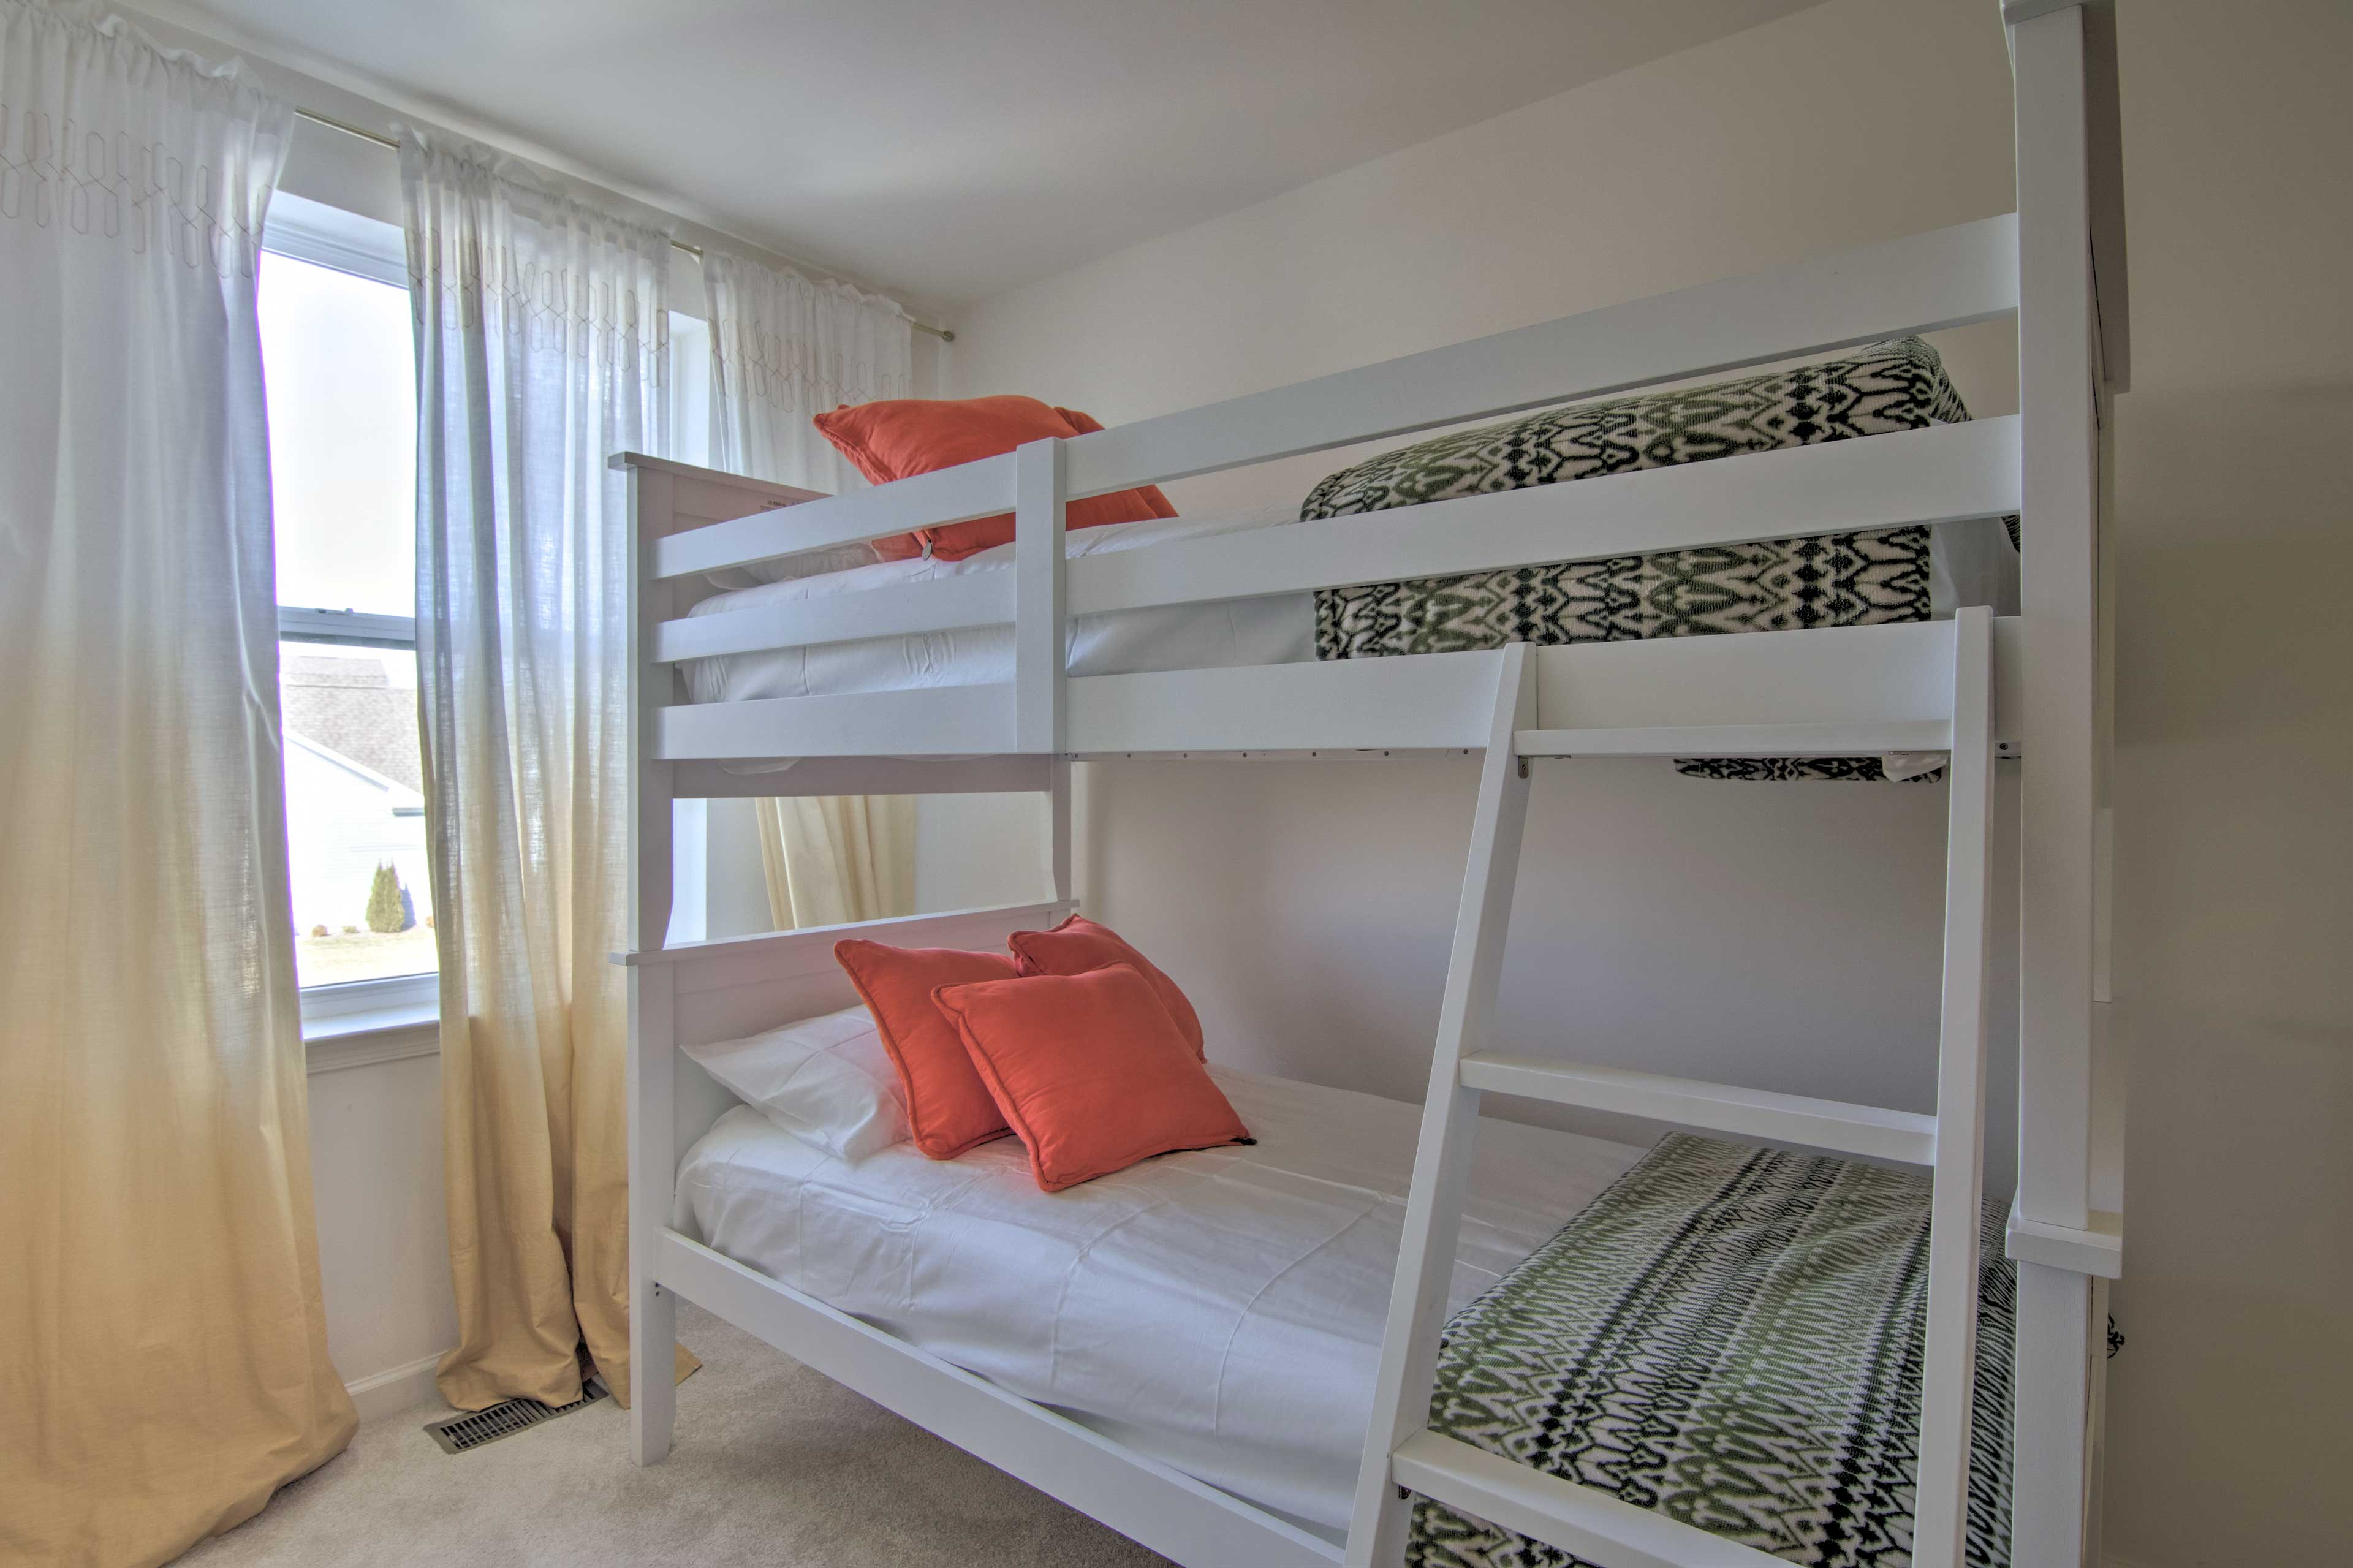 The kids will feel right at home in the twin bunks.